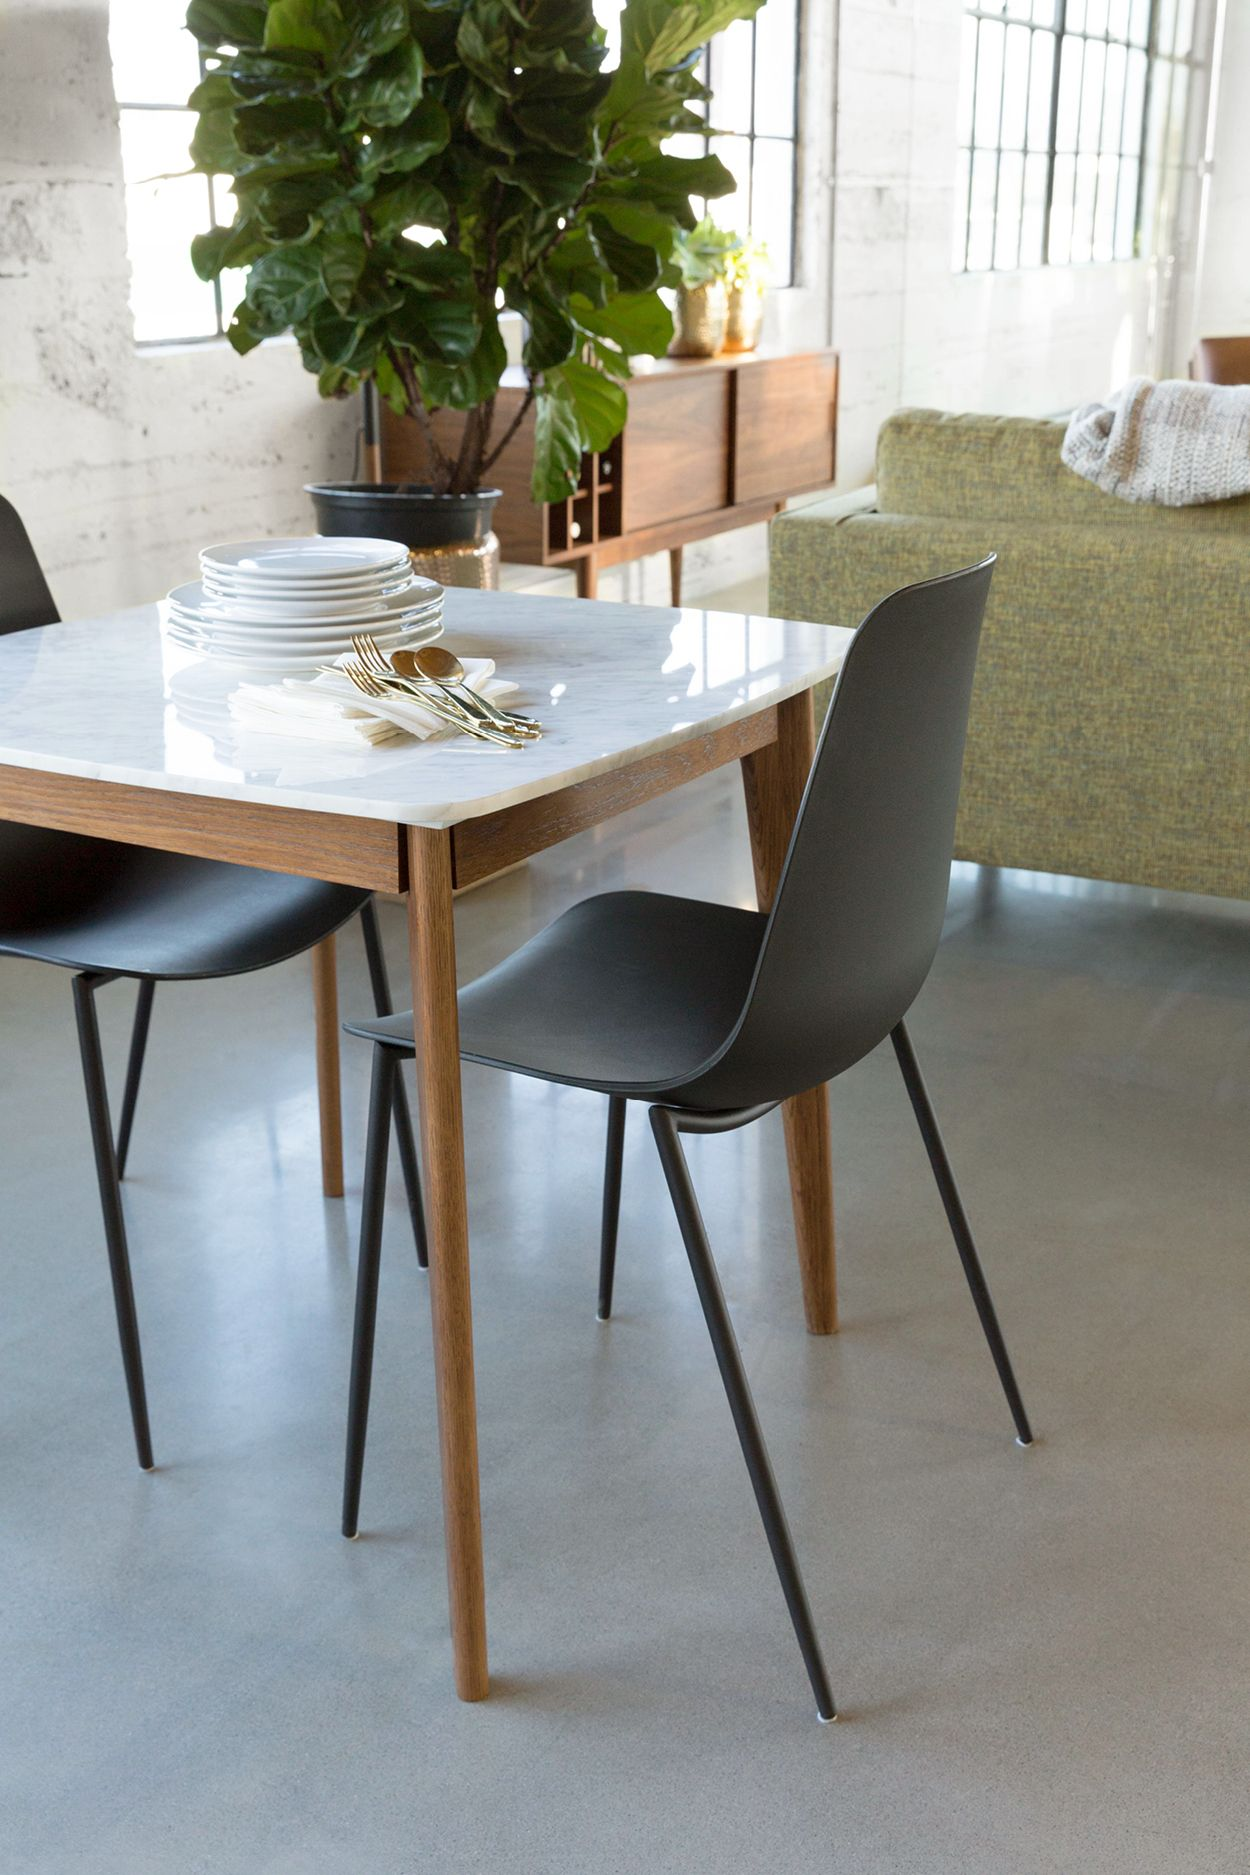 Vena Walnut Cafe Table Cafe Tables Wood Cafe Kitchen Table Legs